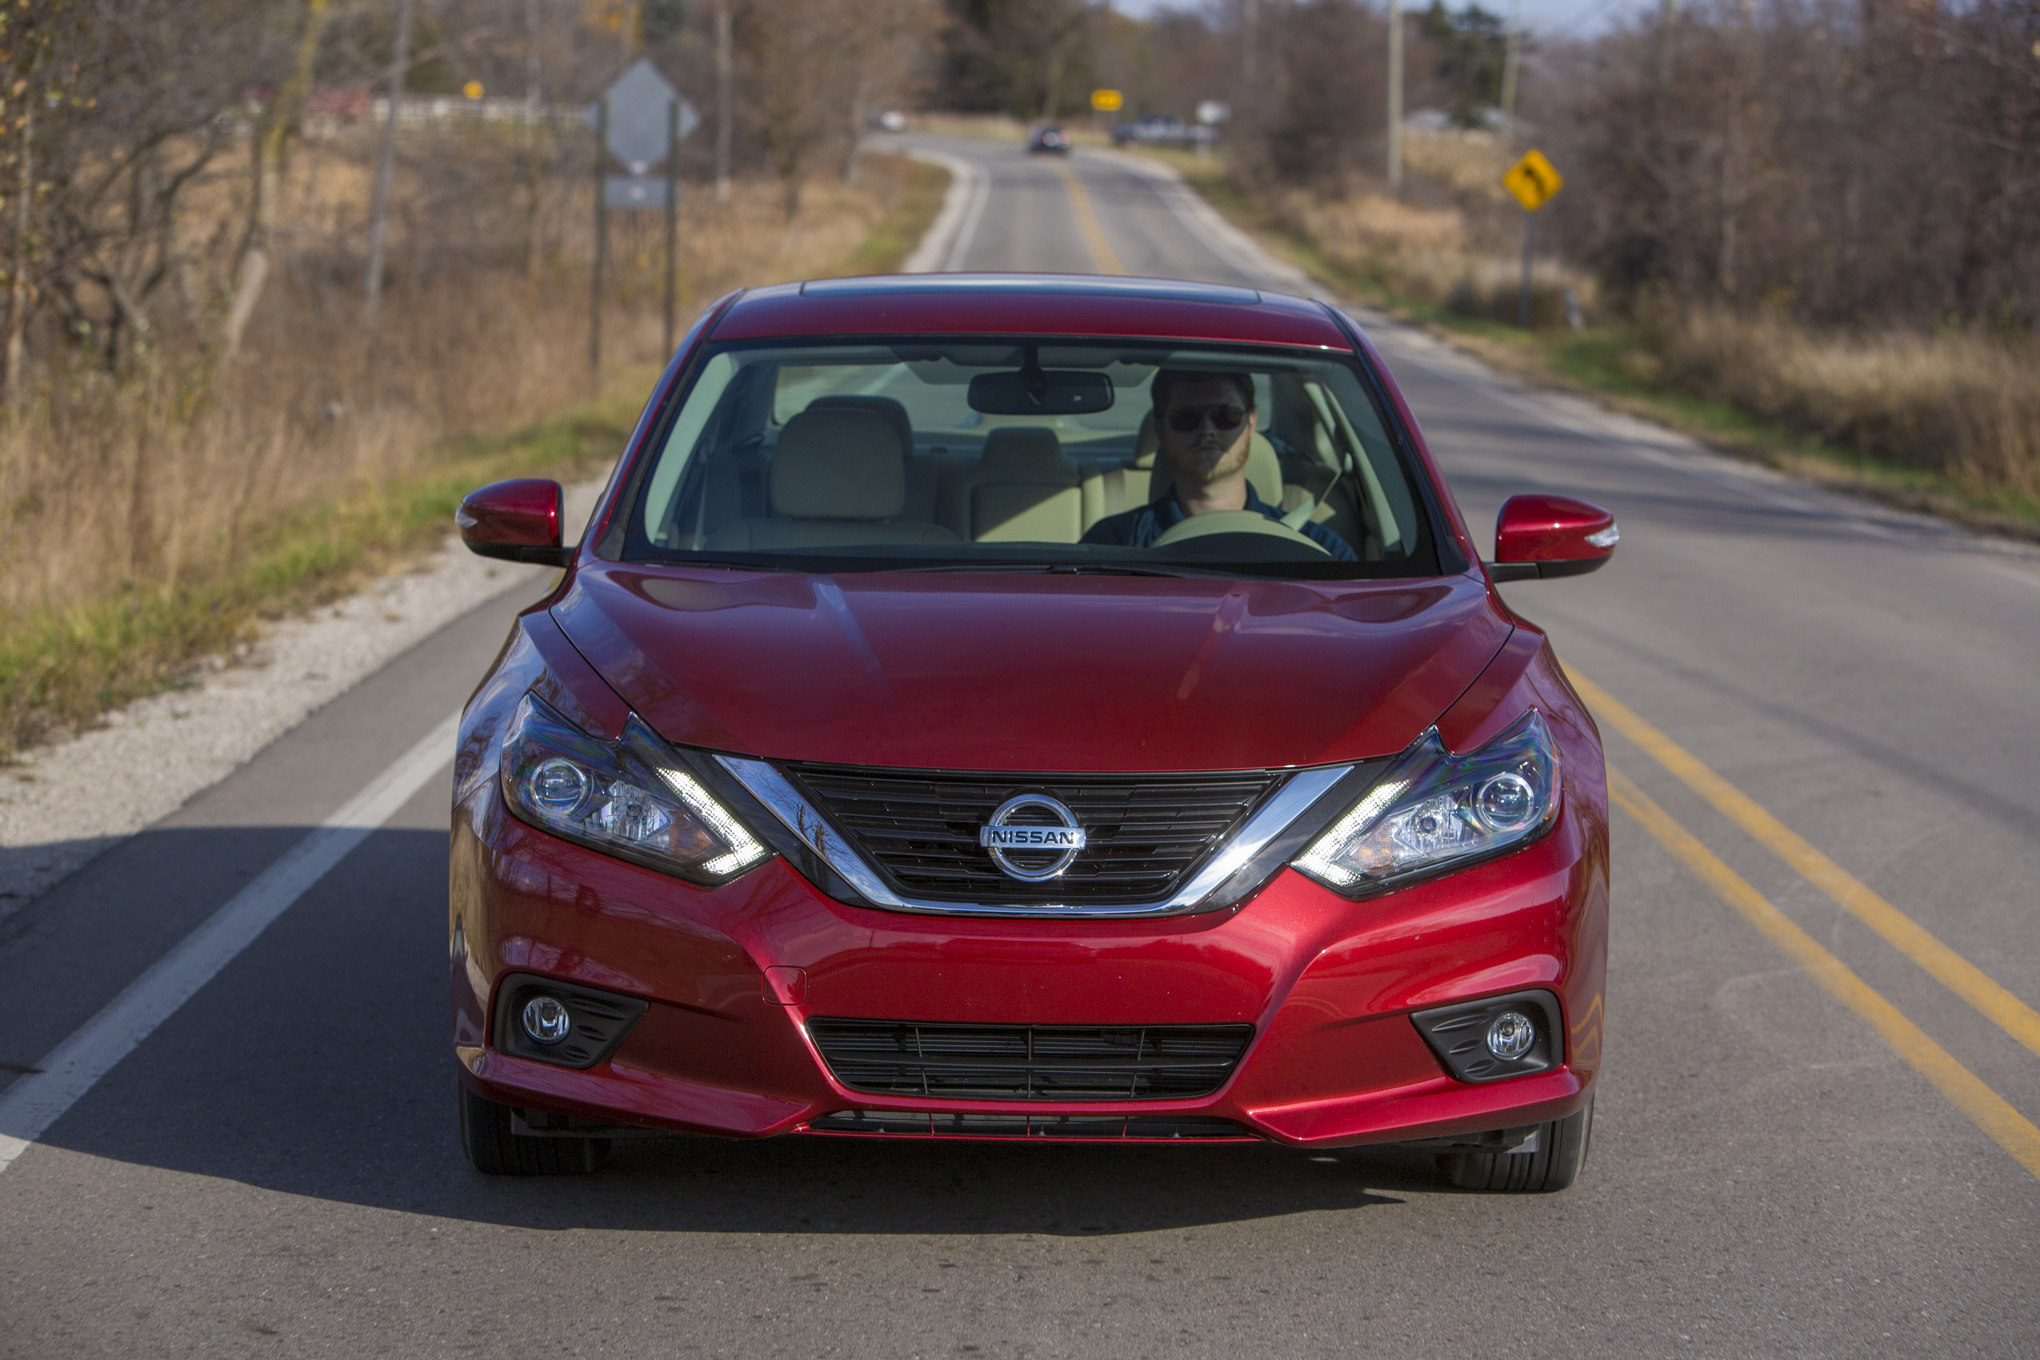 2016 Nissan Altima Exterior Red Front View